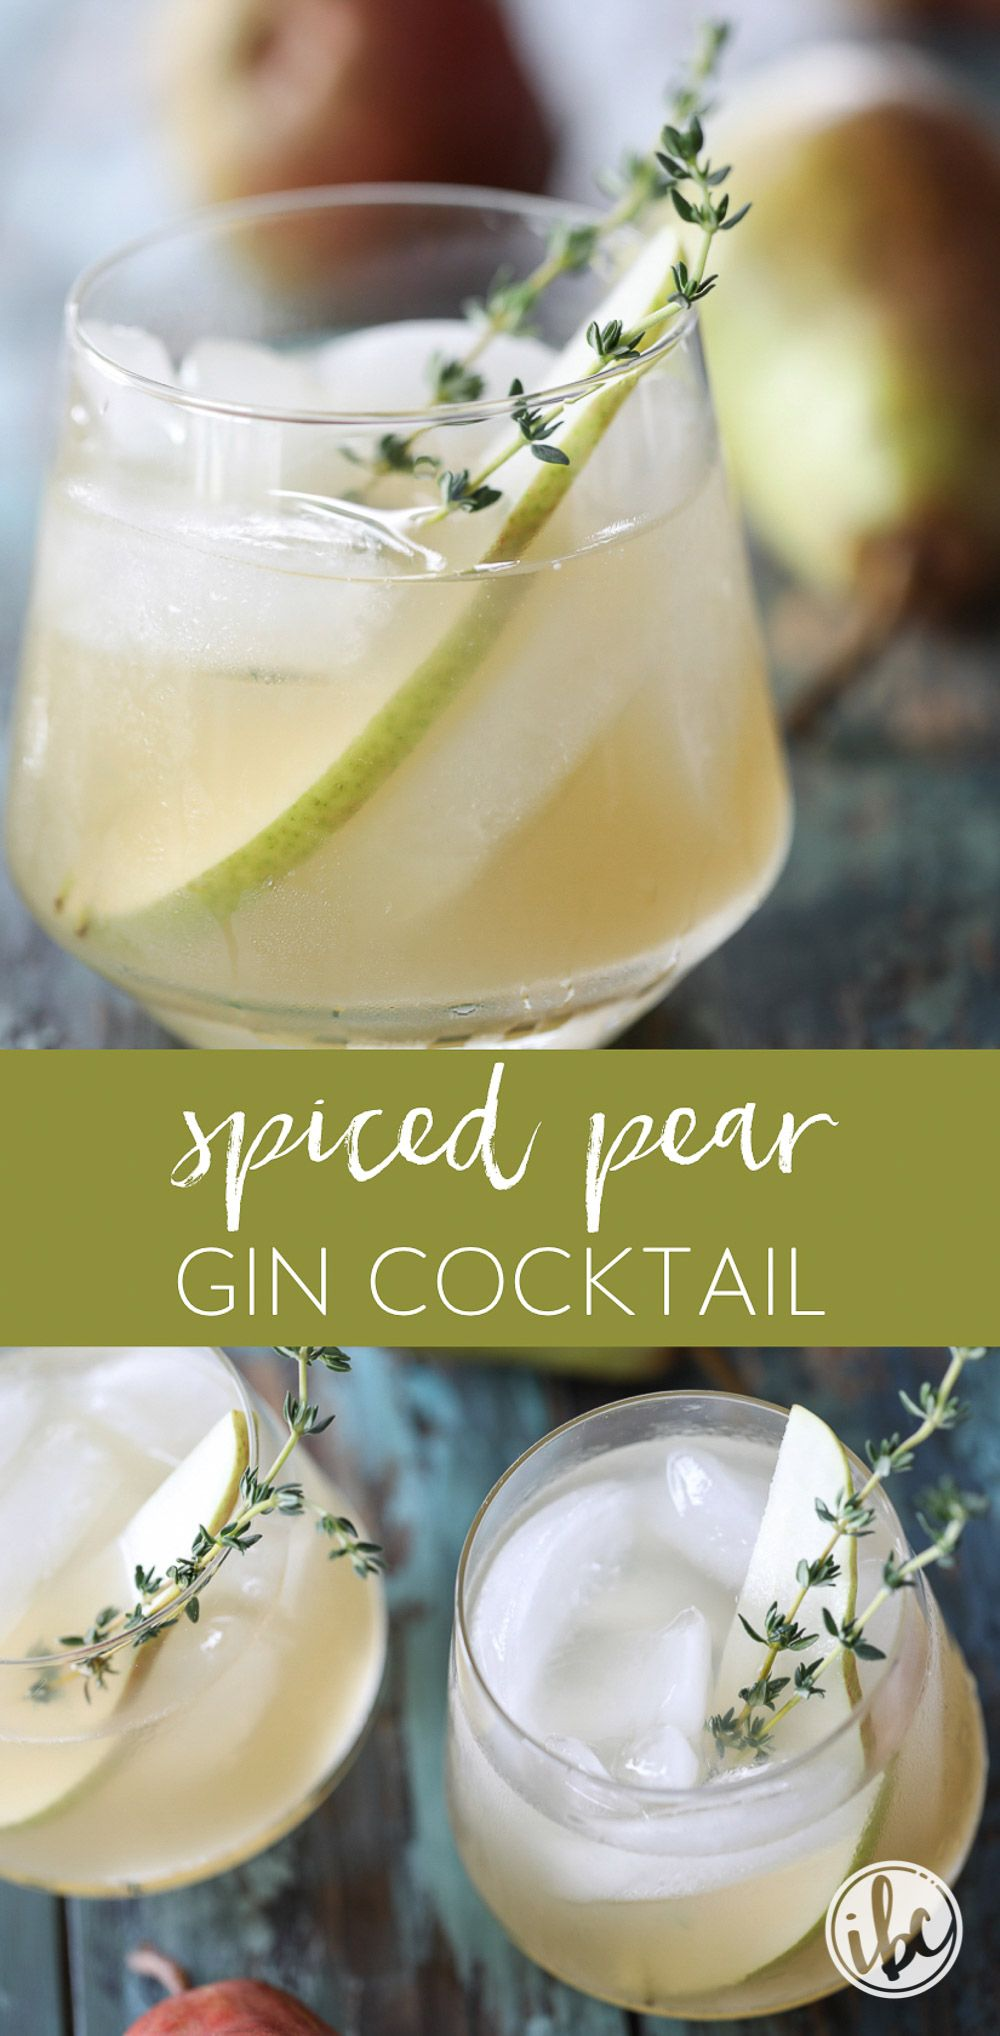 Spiced Pear Gin Cocktail is the perfect signature cocktail for Thanksgiving or any fall celebration. #pear #gin #cocktail #fall  #thanksgiving #recipe  via @inspiredbycharm #thanksgivingdrinksalcohol